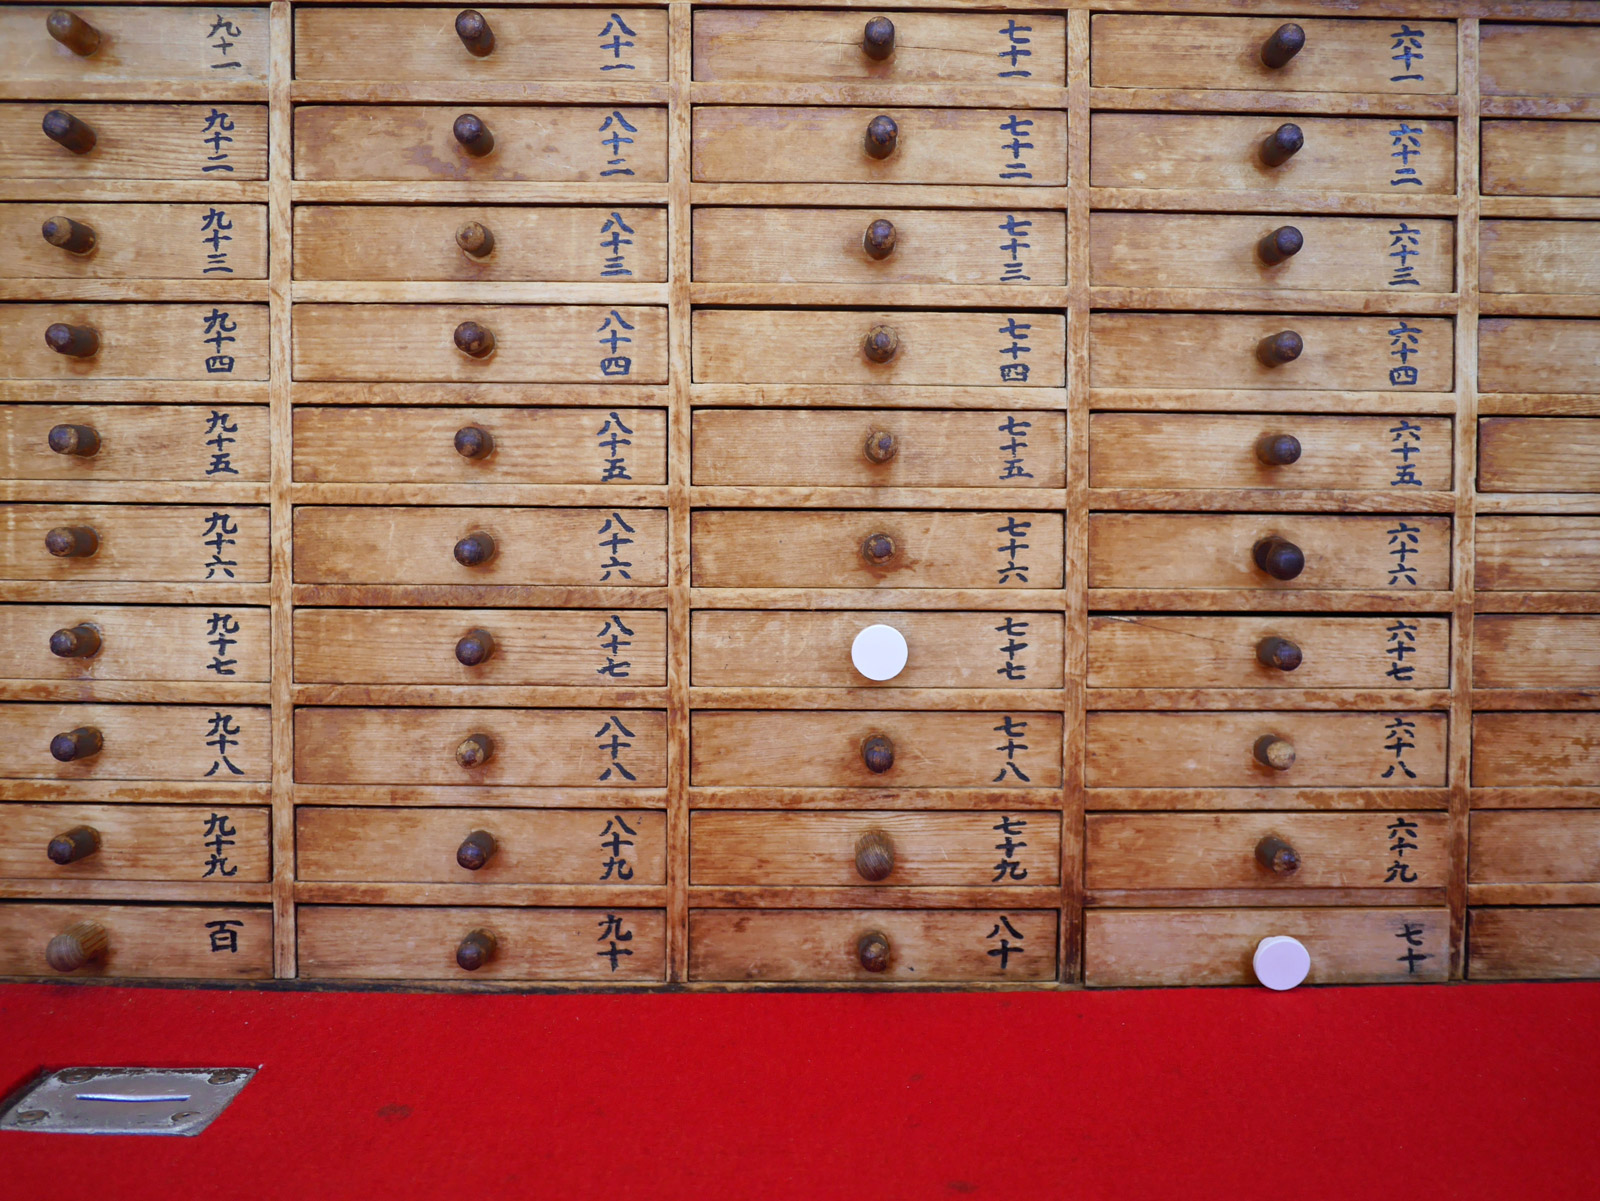 Mystery Draws: Learn Your Future with an Omikuji Fortune - Tokyo, Japan